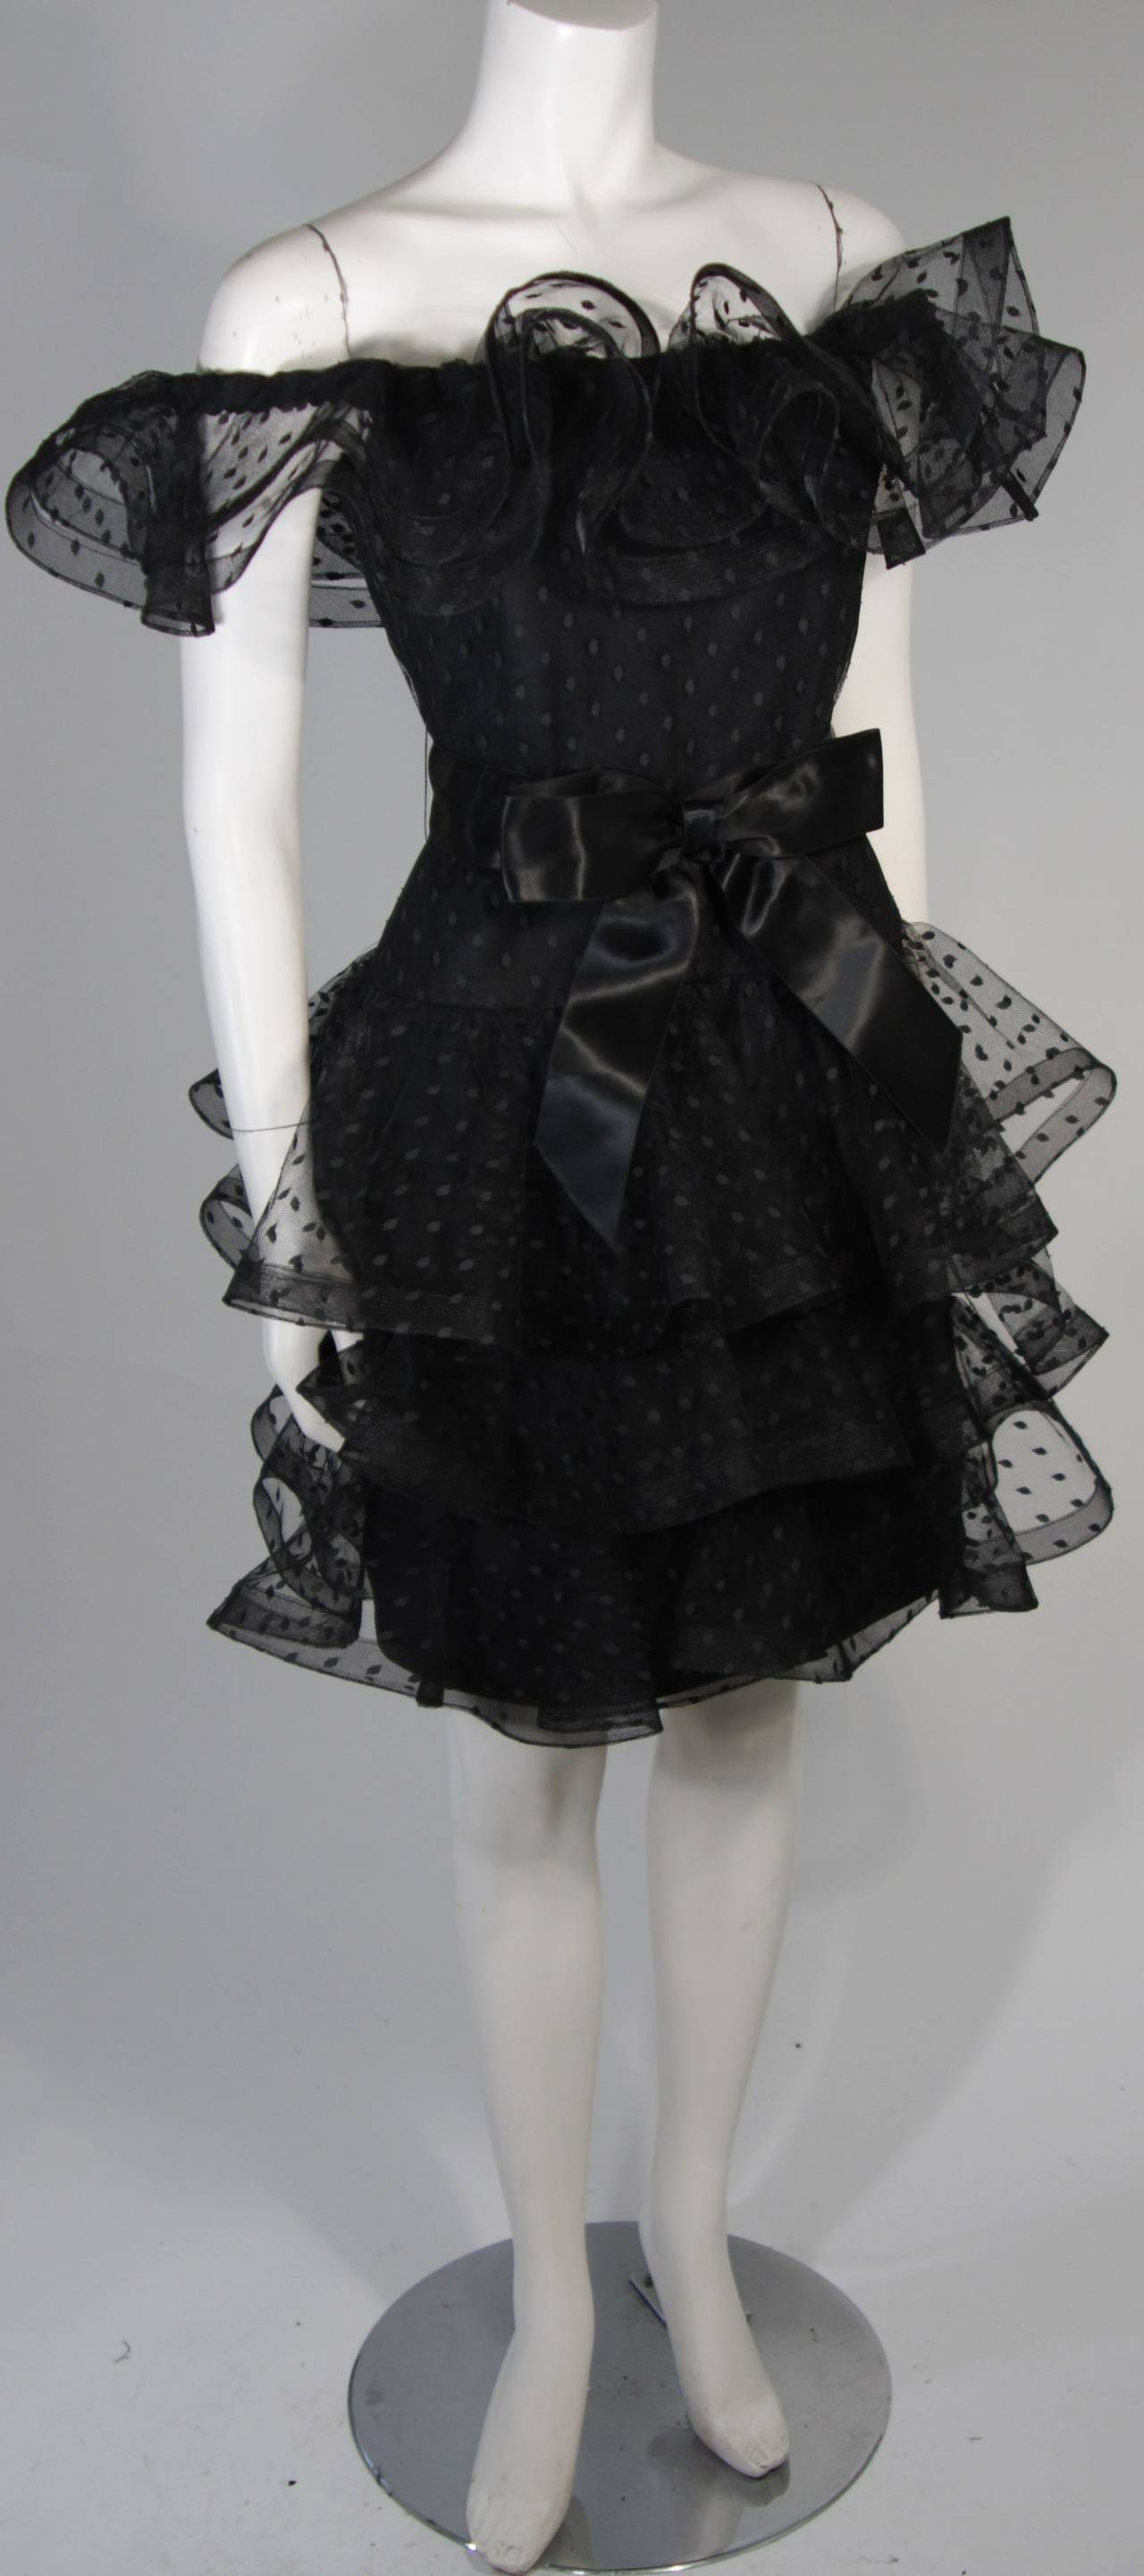 Victor Costa Black Cocktail Dress with Ruffled Horsehair Hemlines Size 2 4